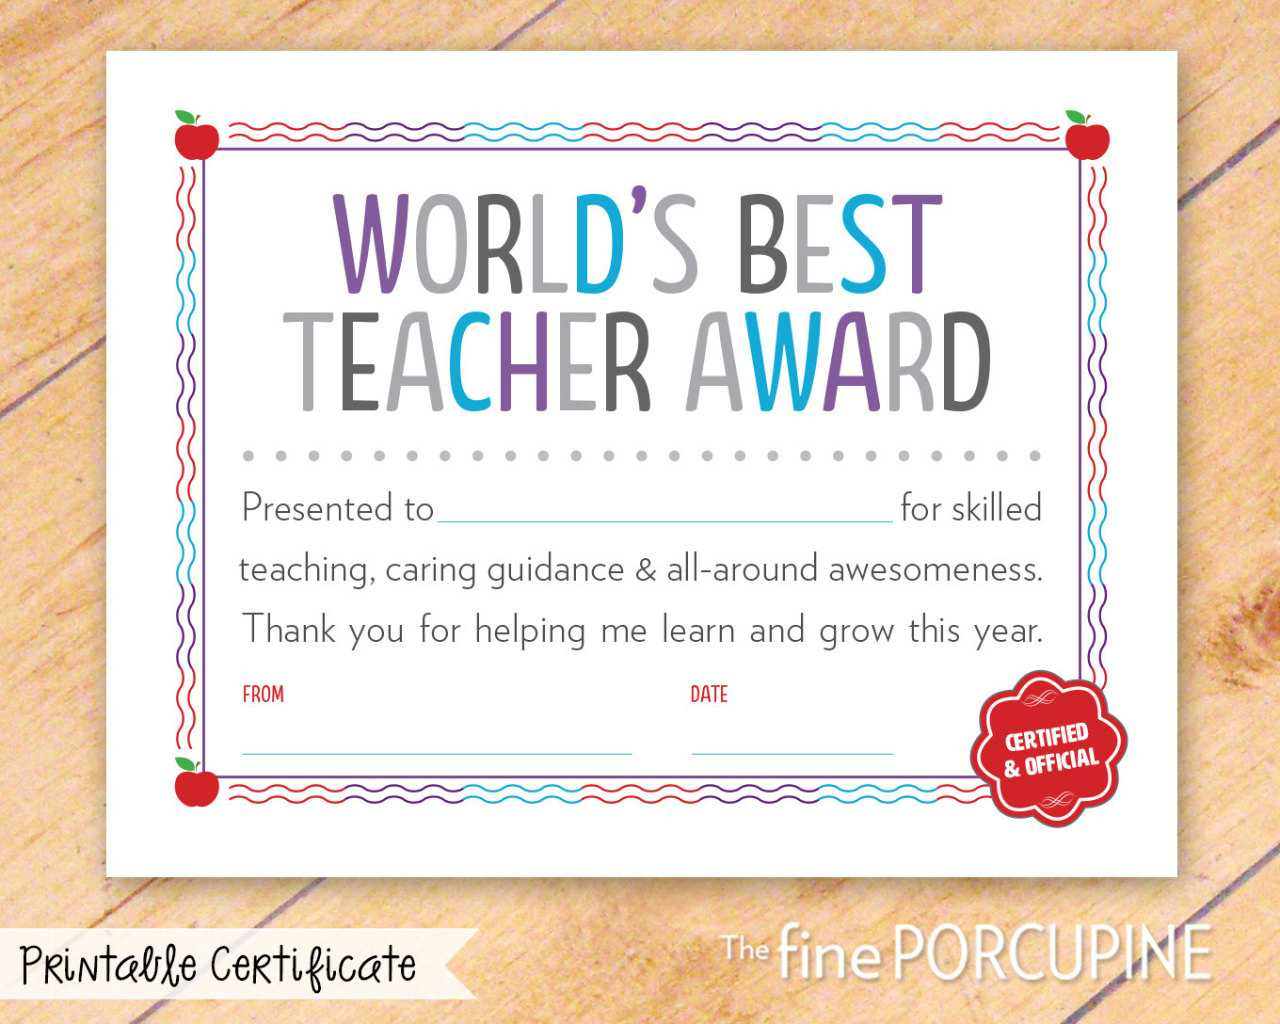 The Fine Porcupine — World's Best Teacher Award, Printable Within Best Teacher Certificate Templates Free